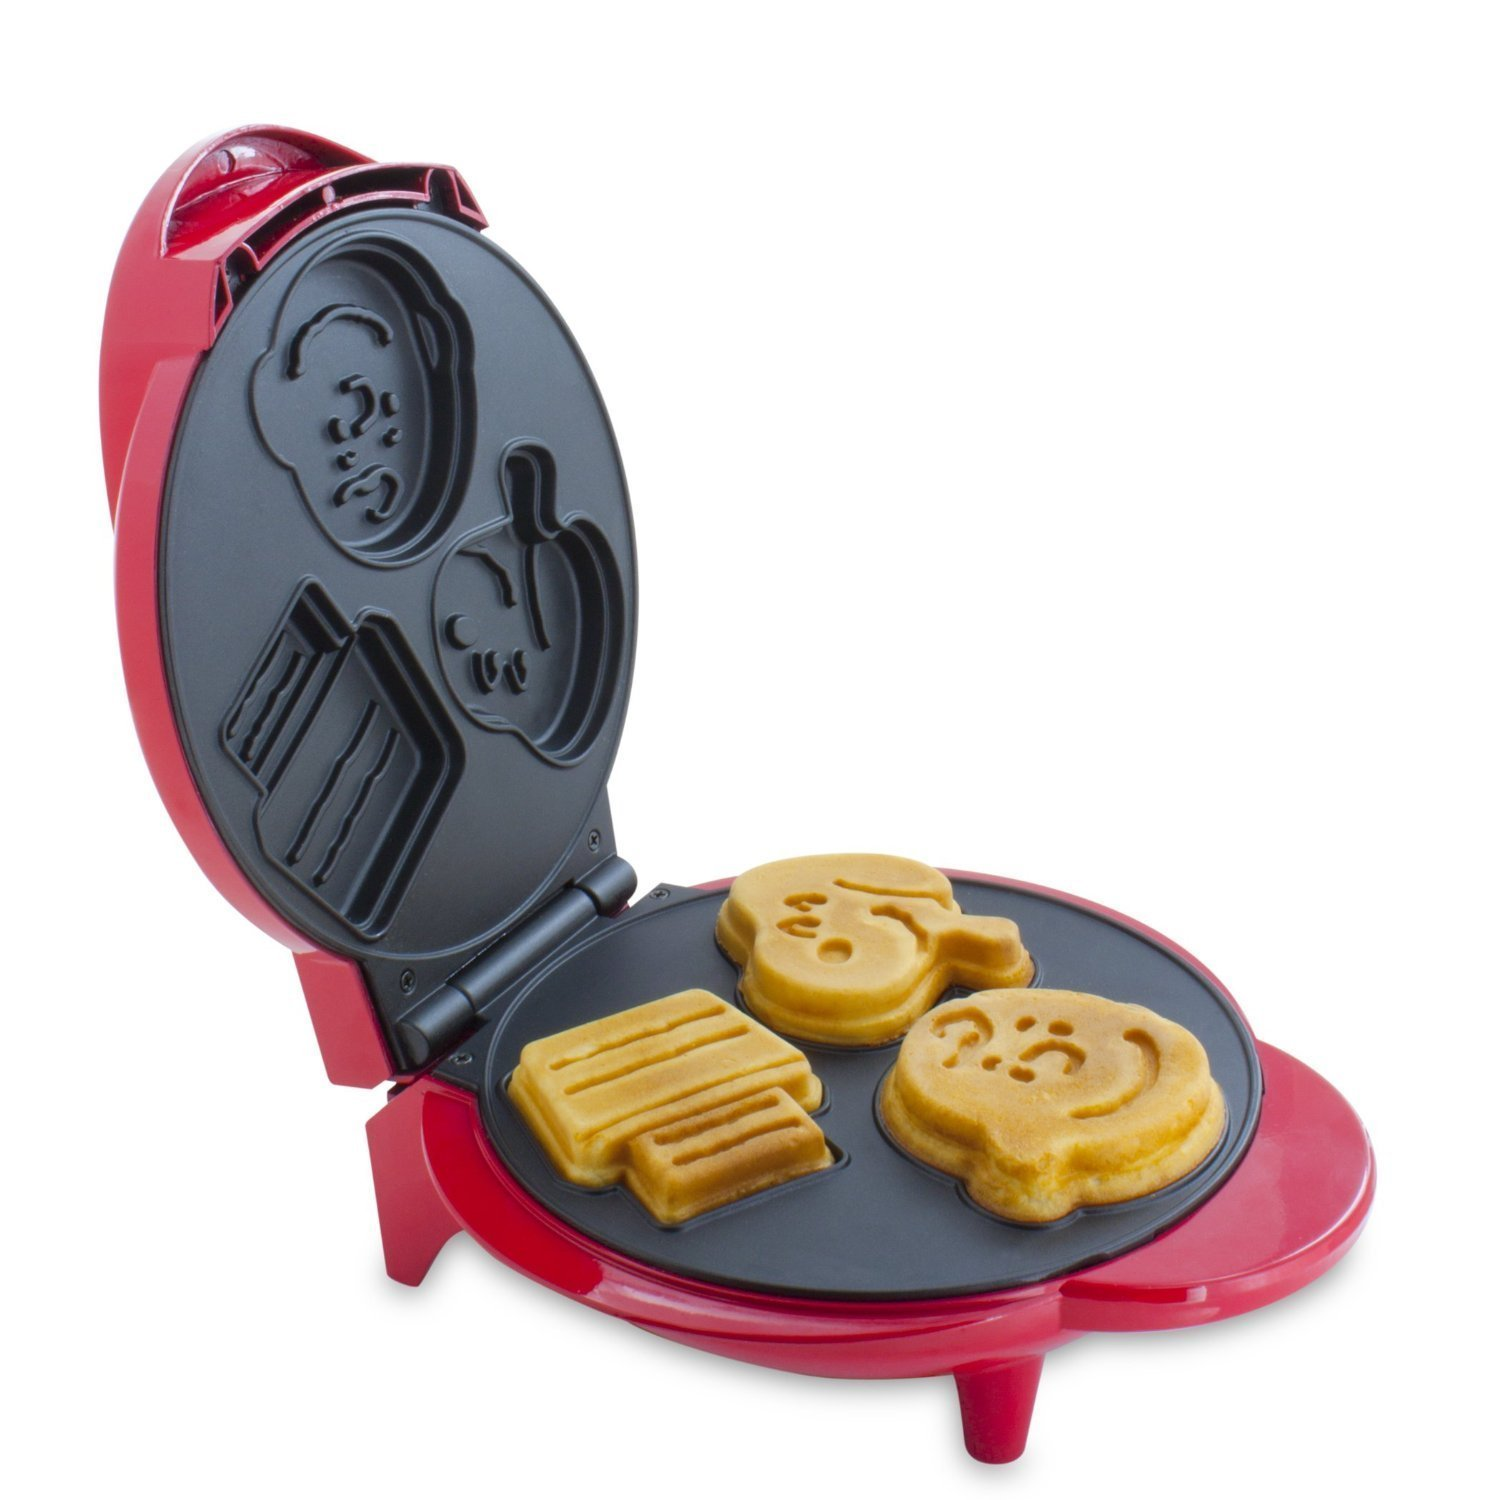 Smart Planet WM 6S Peanuts Snoopy and Charlie Brown Waffle Maker, Red